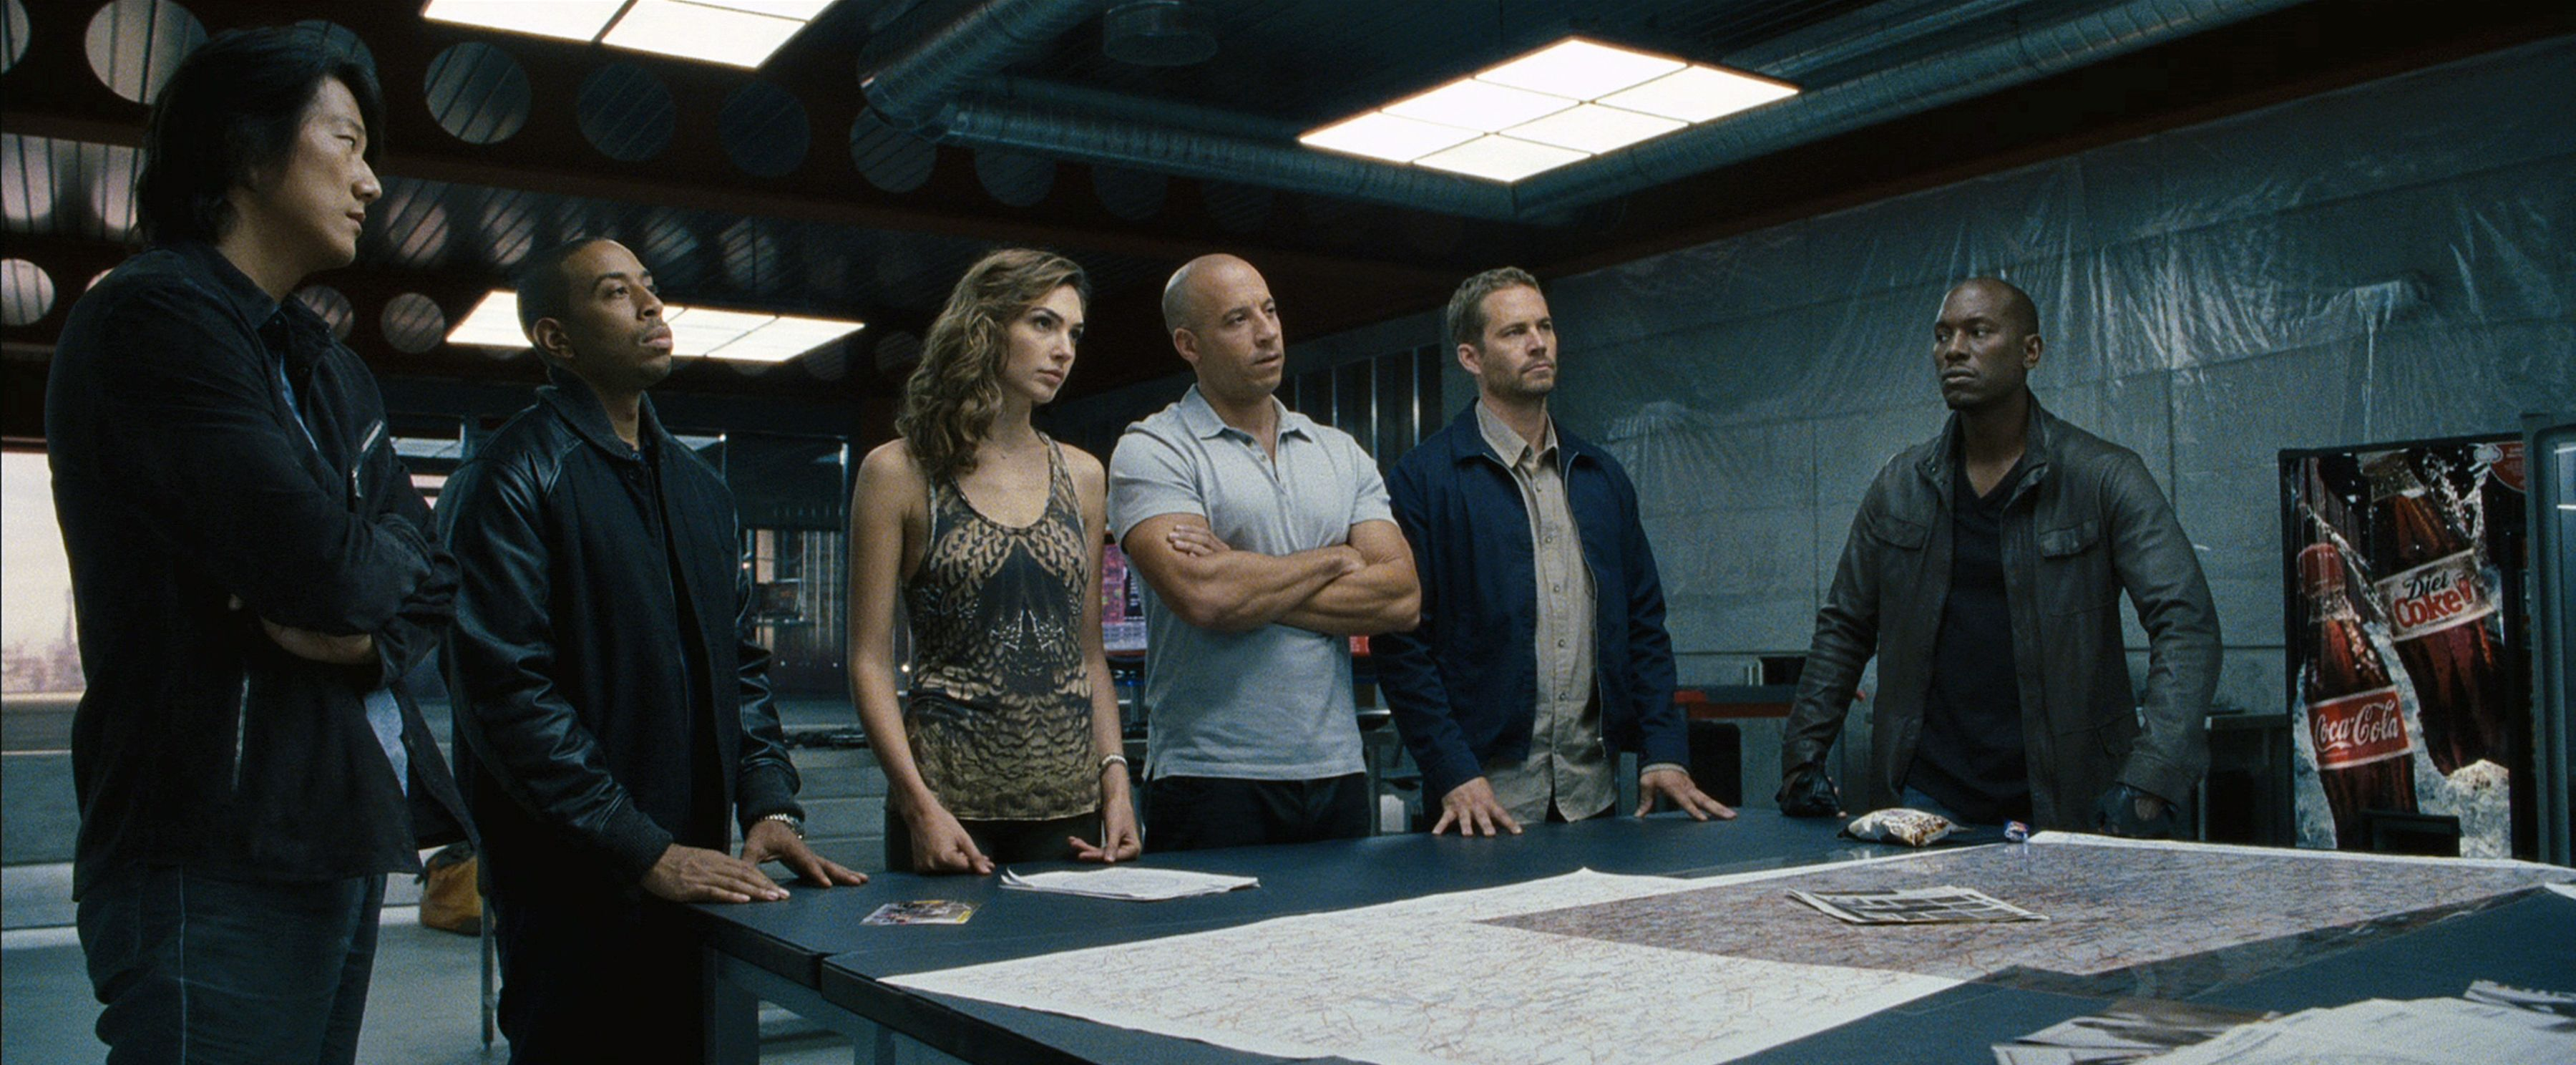 fast furious 6 review fast furious 6 stars vin diesel paul walker and dwayne johnson. Black Bedroom Furniture Sets. Home Design Ideas